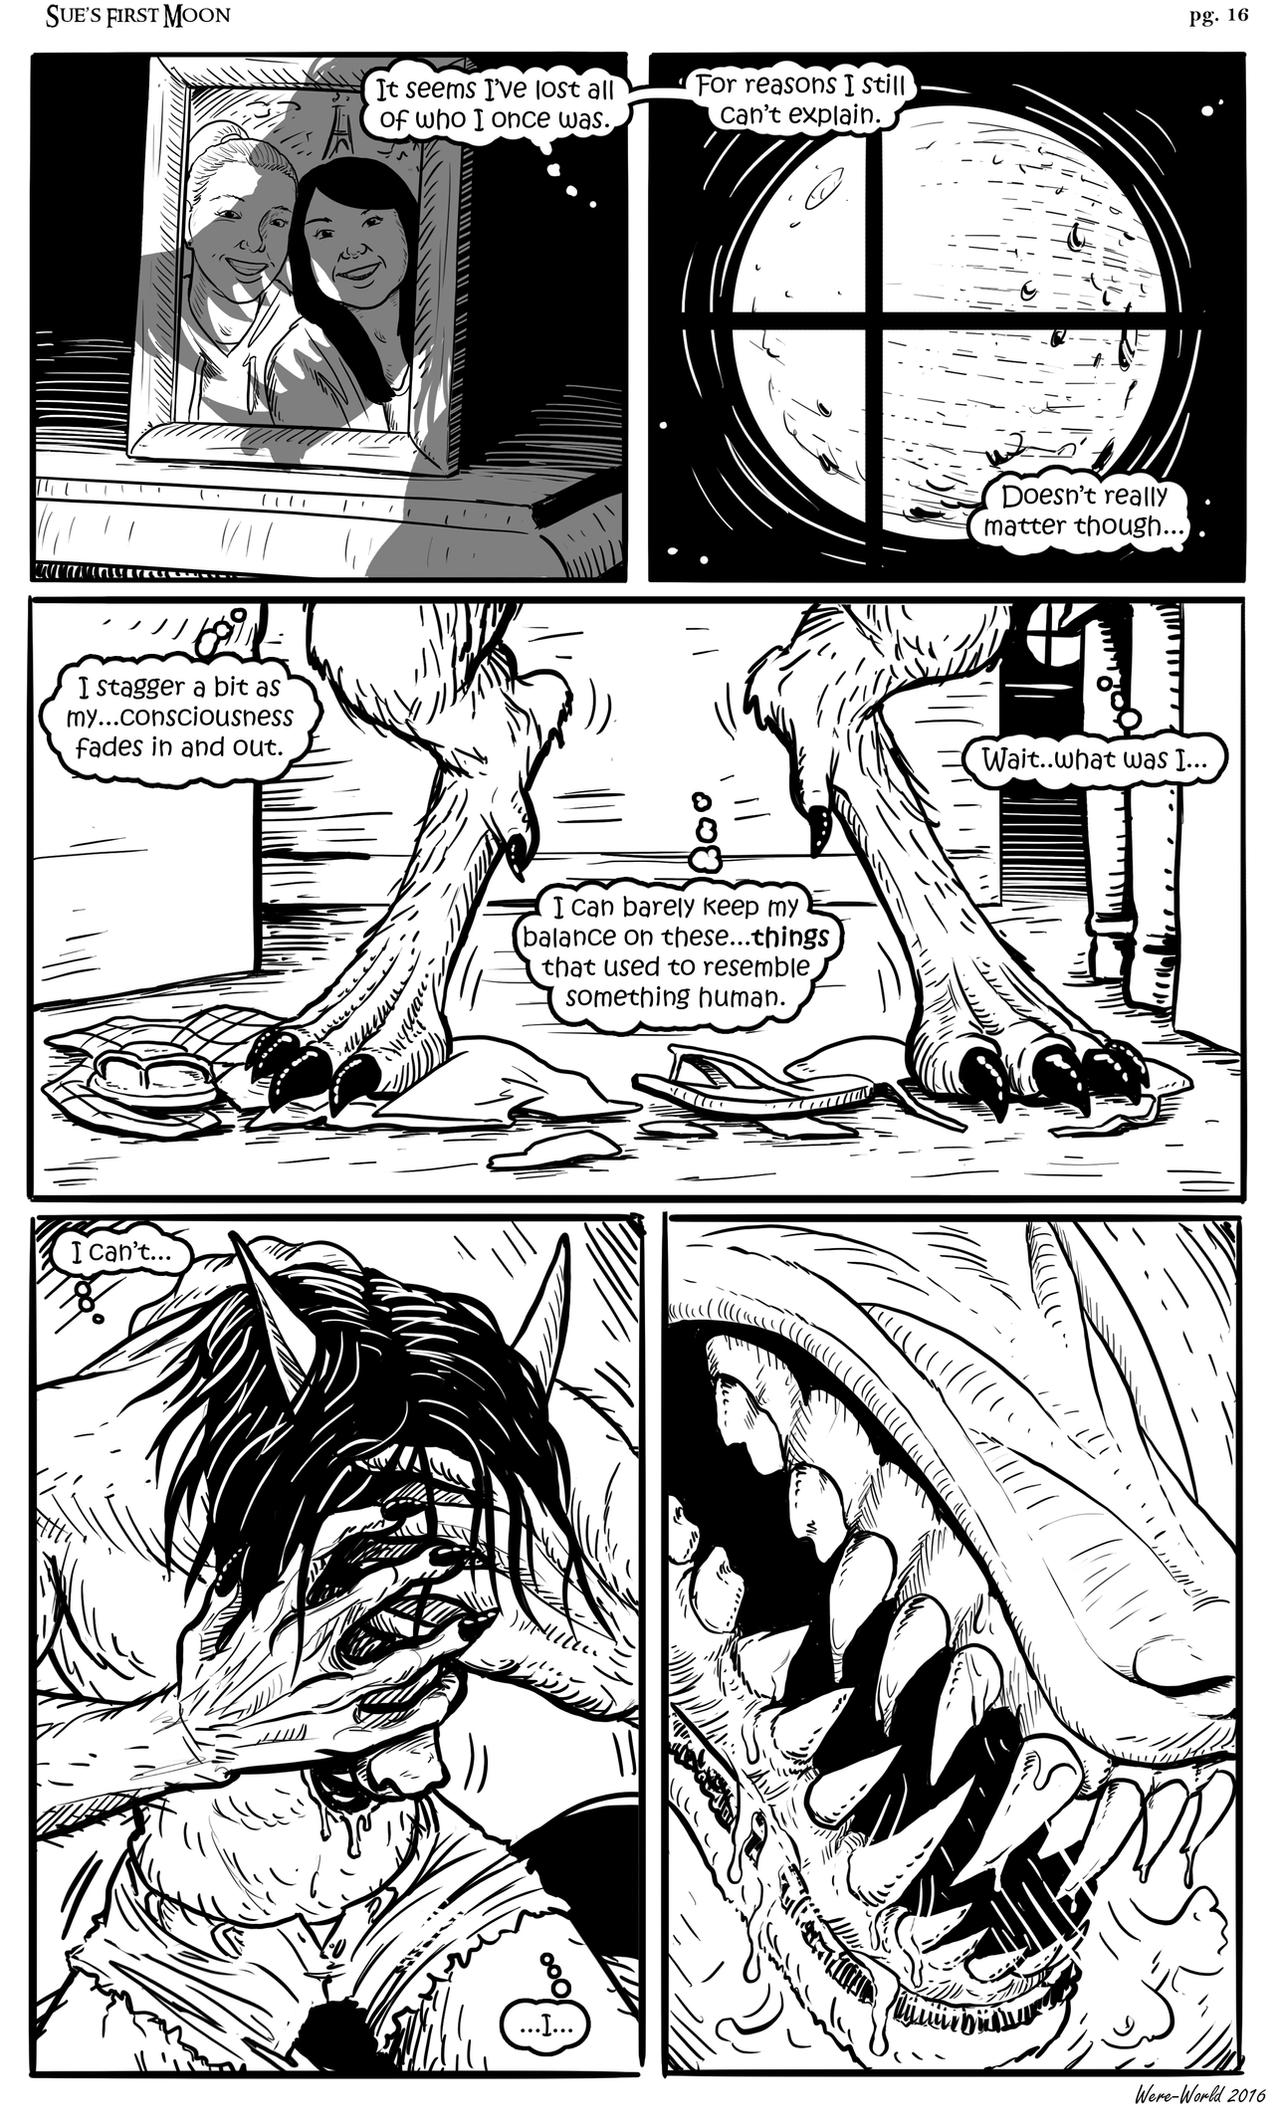 Sue's First Moon pg16 by Were-World